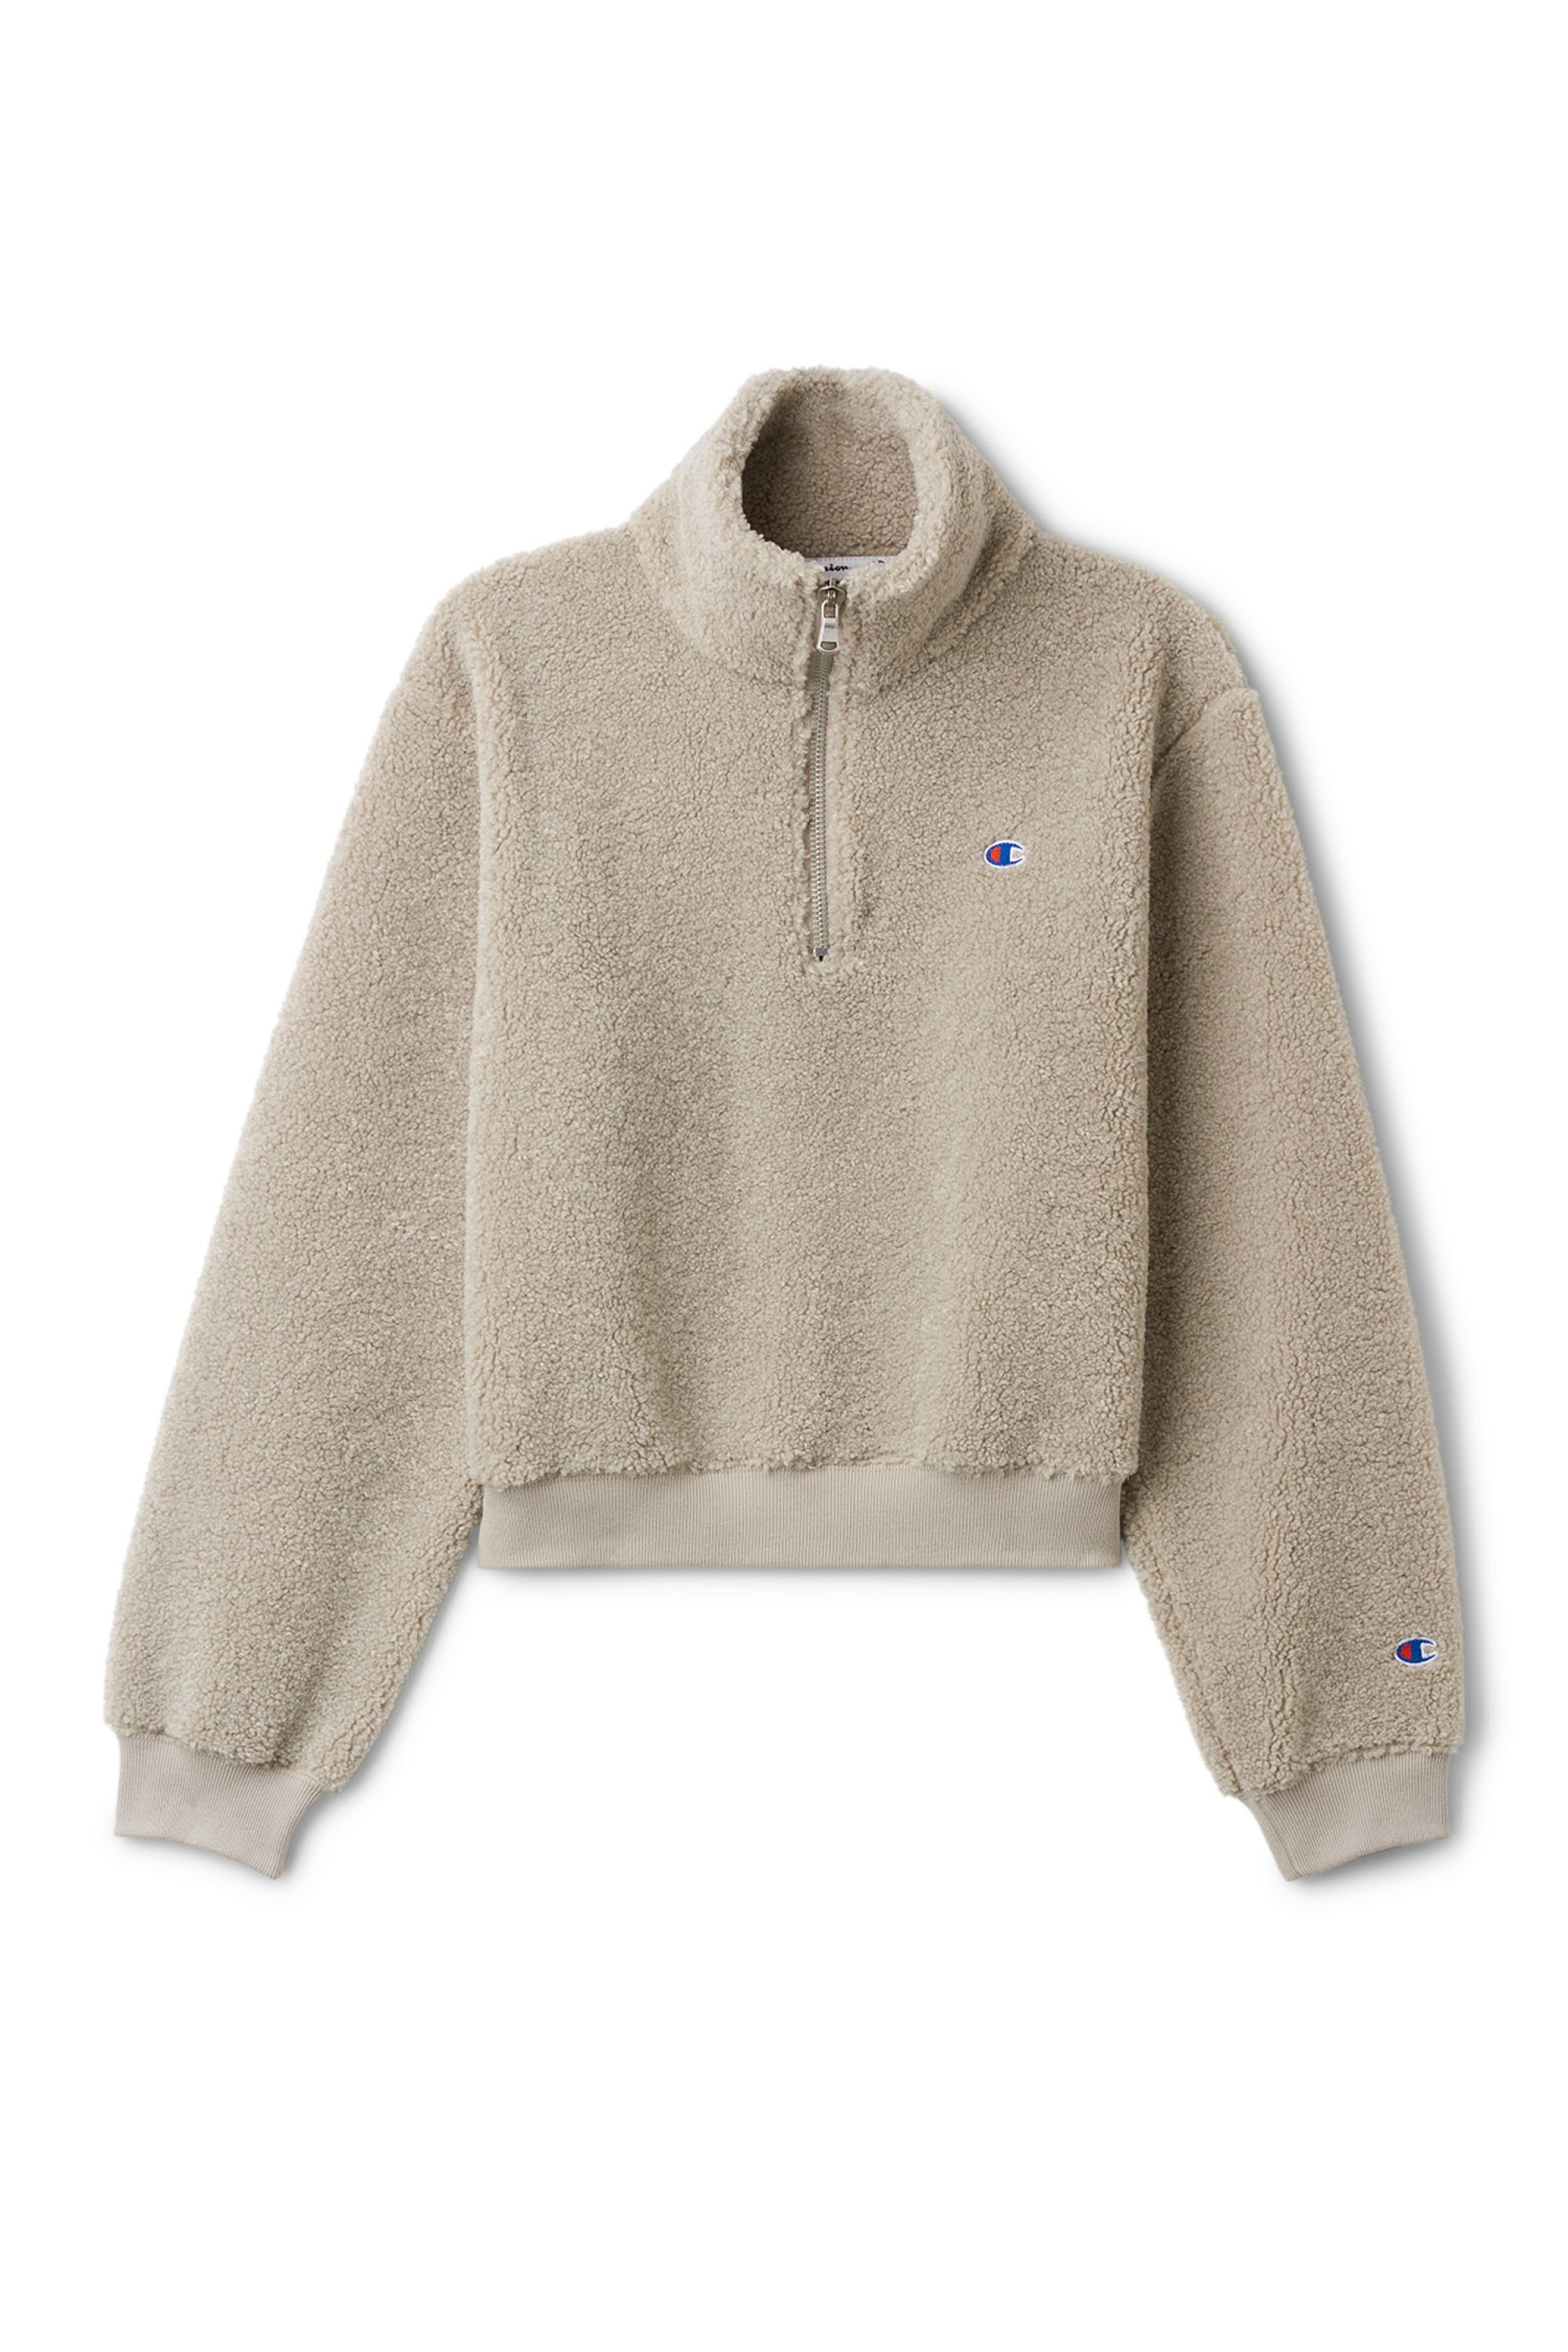 6e328425d6c8d The Flow Sherpa Turtleneck by Champion is a short sweatshirt in a soft teddy  material. A turtleneck with a zipper, an elasticated ribbed hemline and  subtle